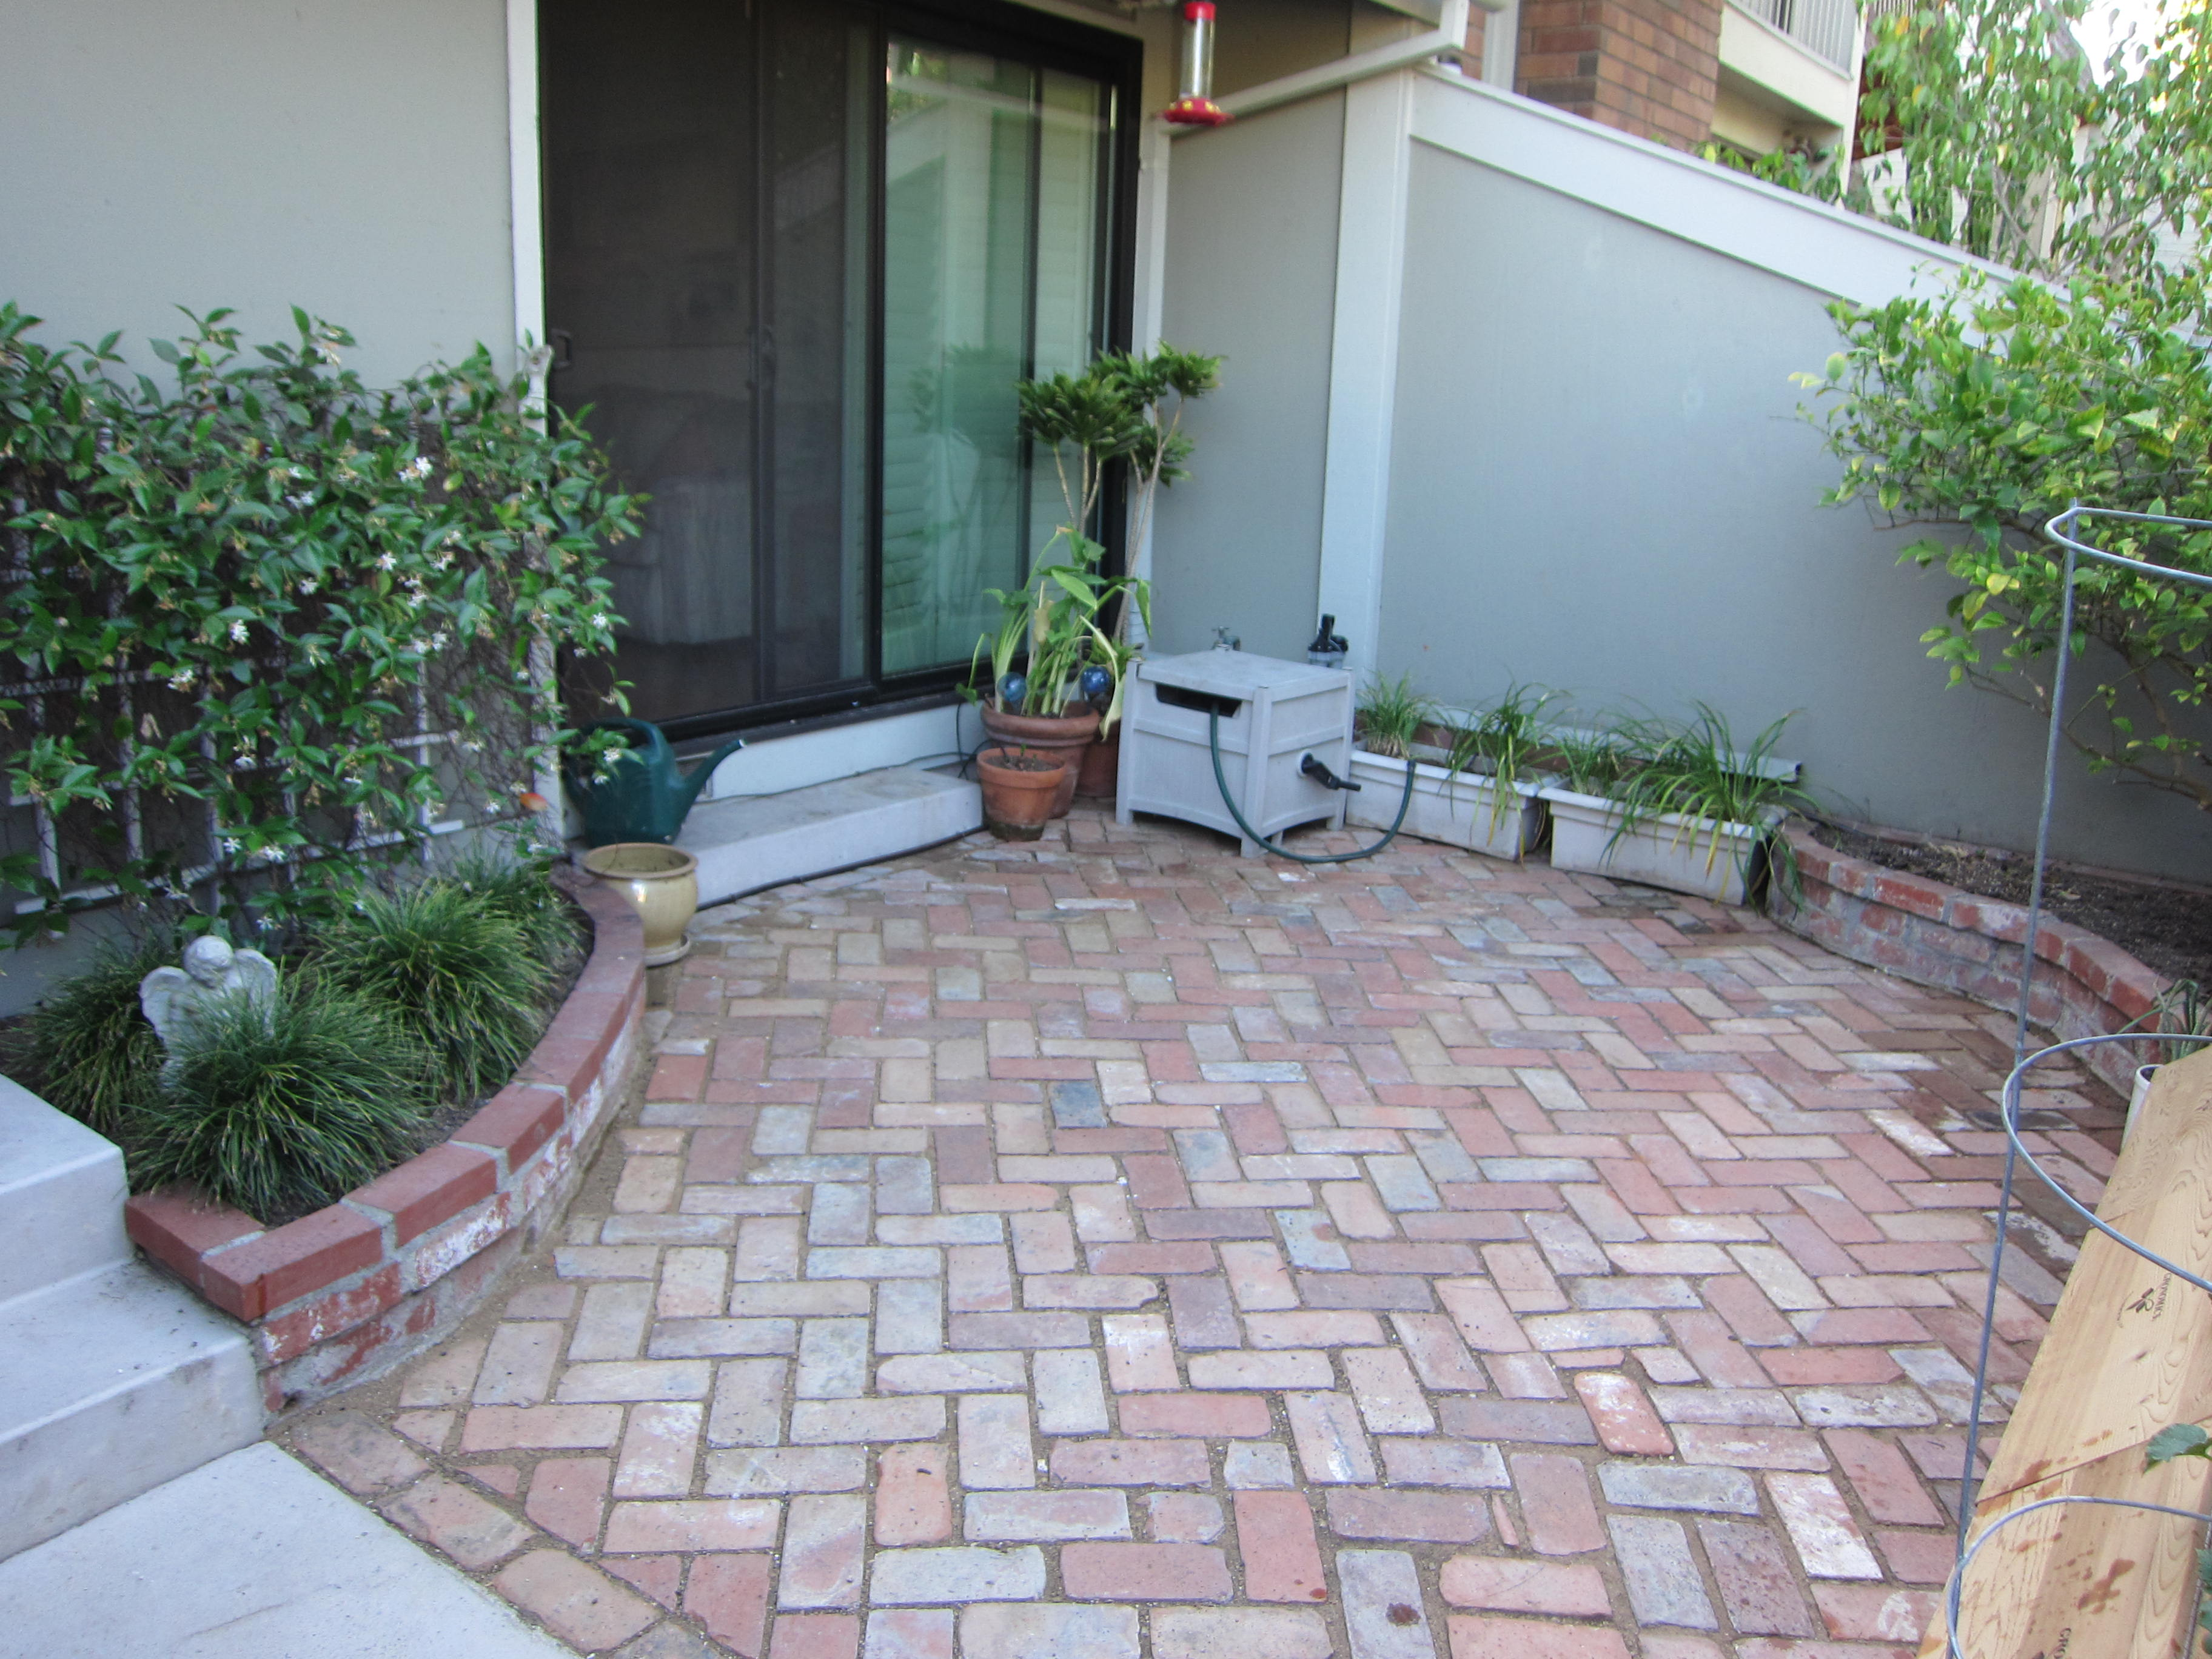 The finished garden presents a welcoming (and level) patio for visitors to enjoy.